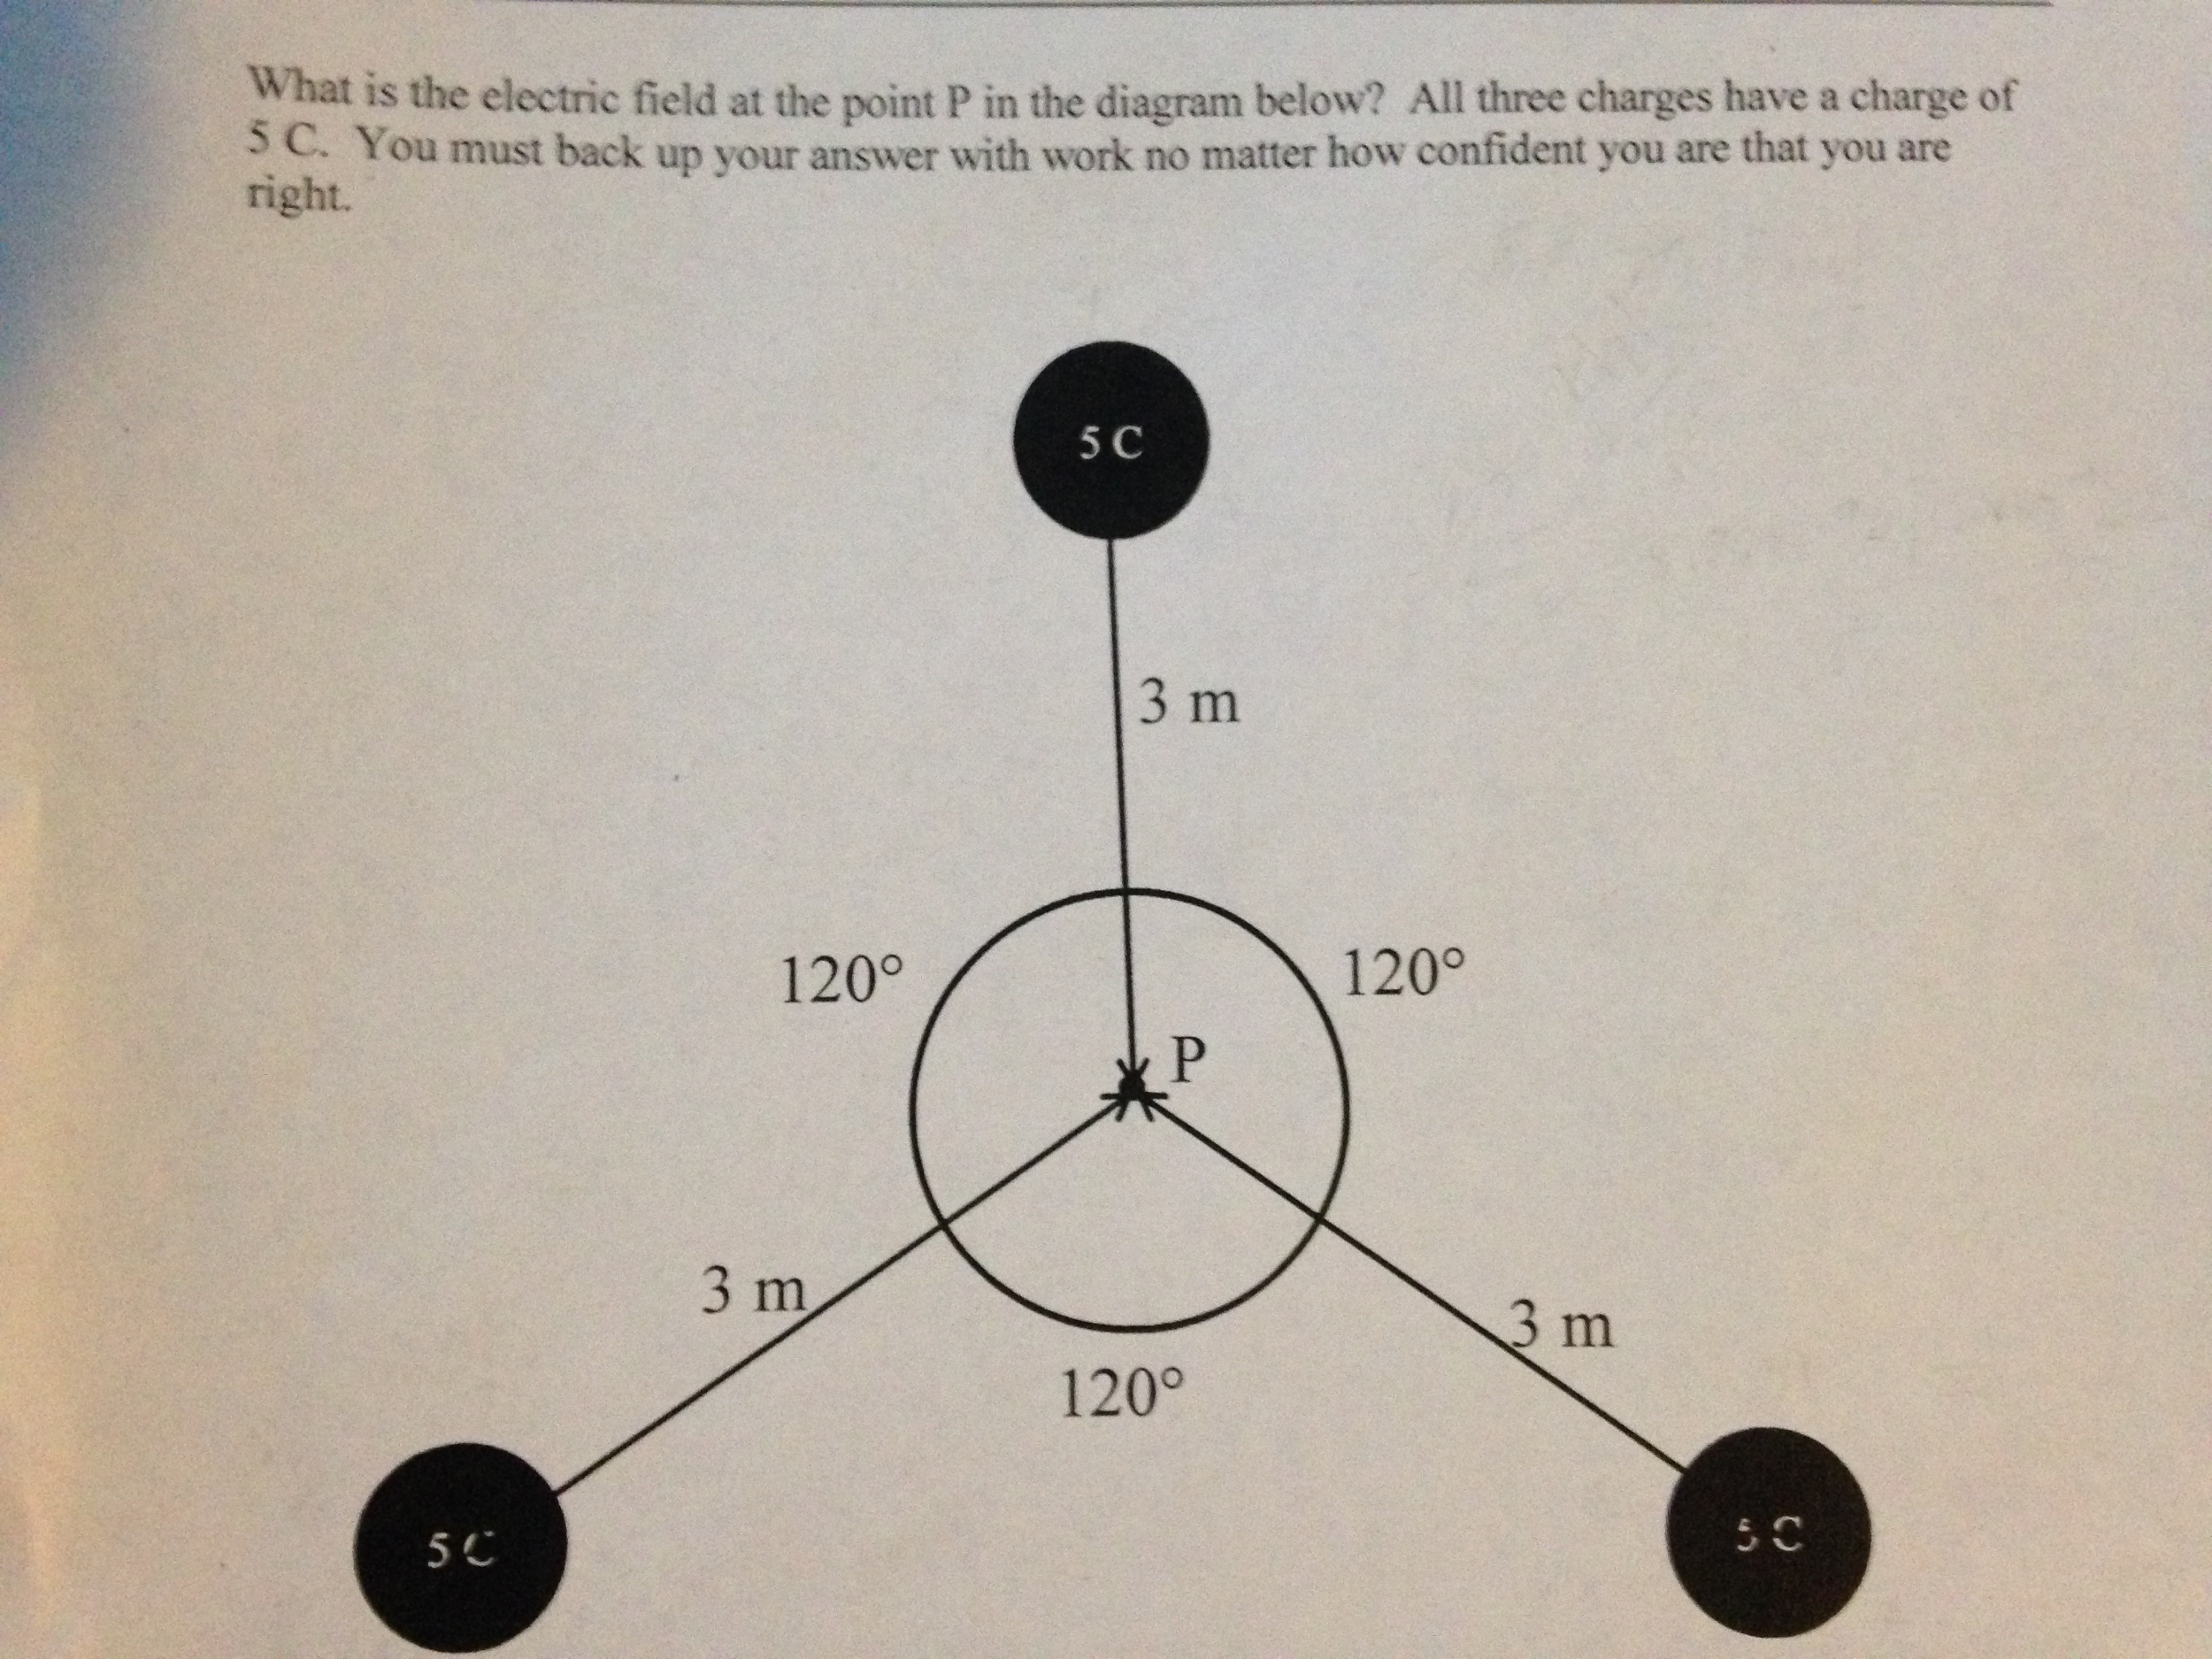 what is the electric field at the point p in the